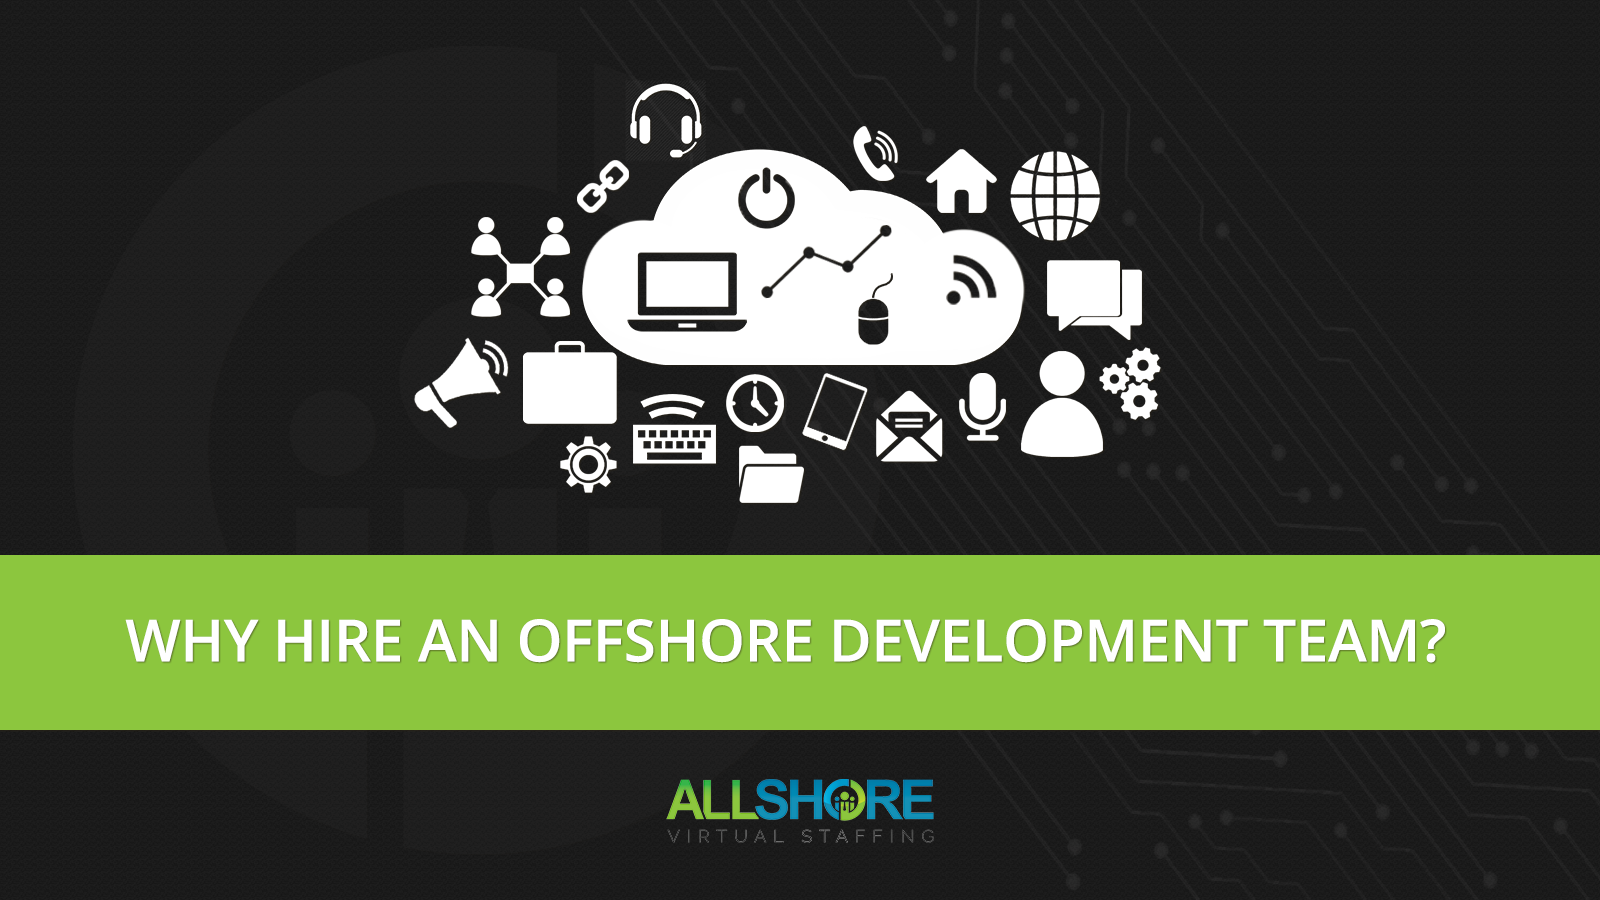 Why Hire an Offshore Development Team?